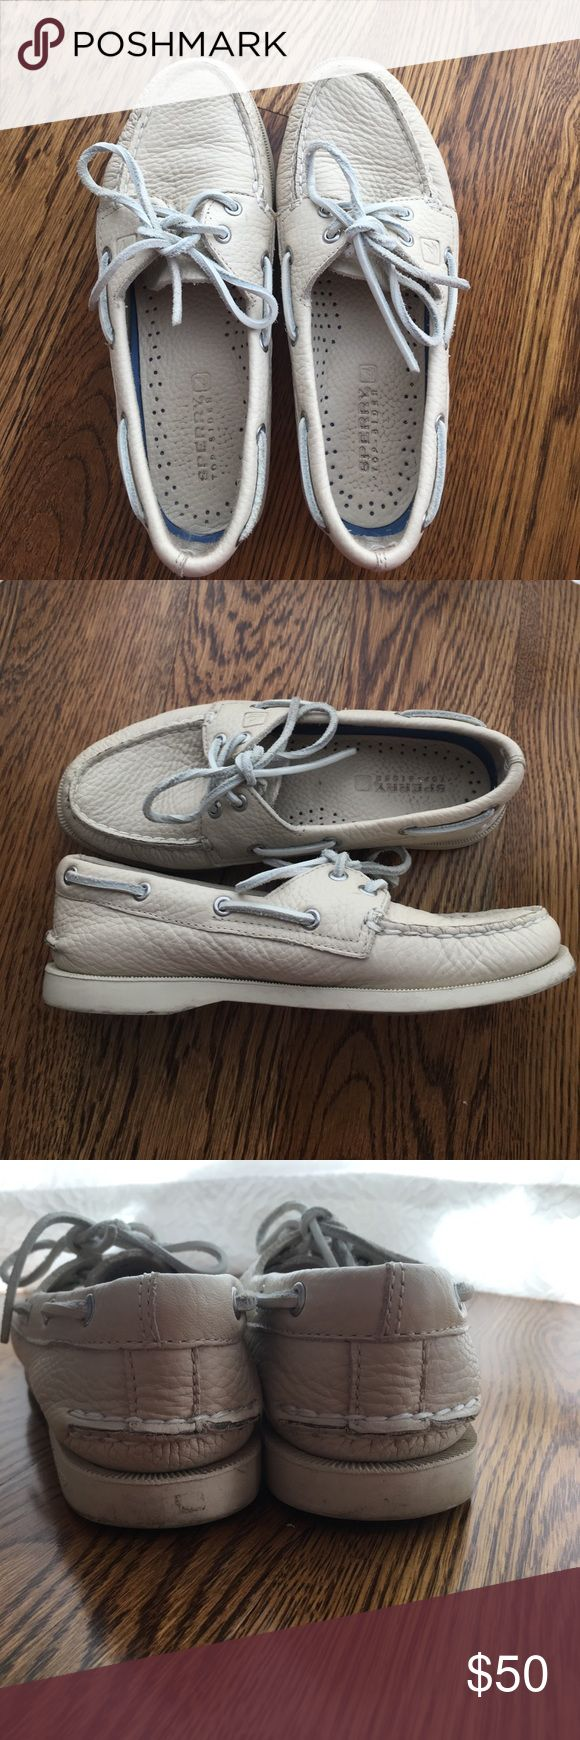 White Sperry Top- Sliders White leather size 5.5 Sperry Sliders Sperry Top-Sider Shoes Flats & Loafers